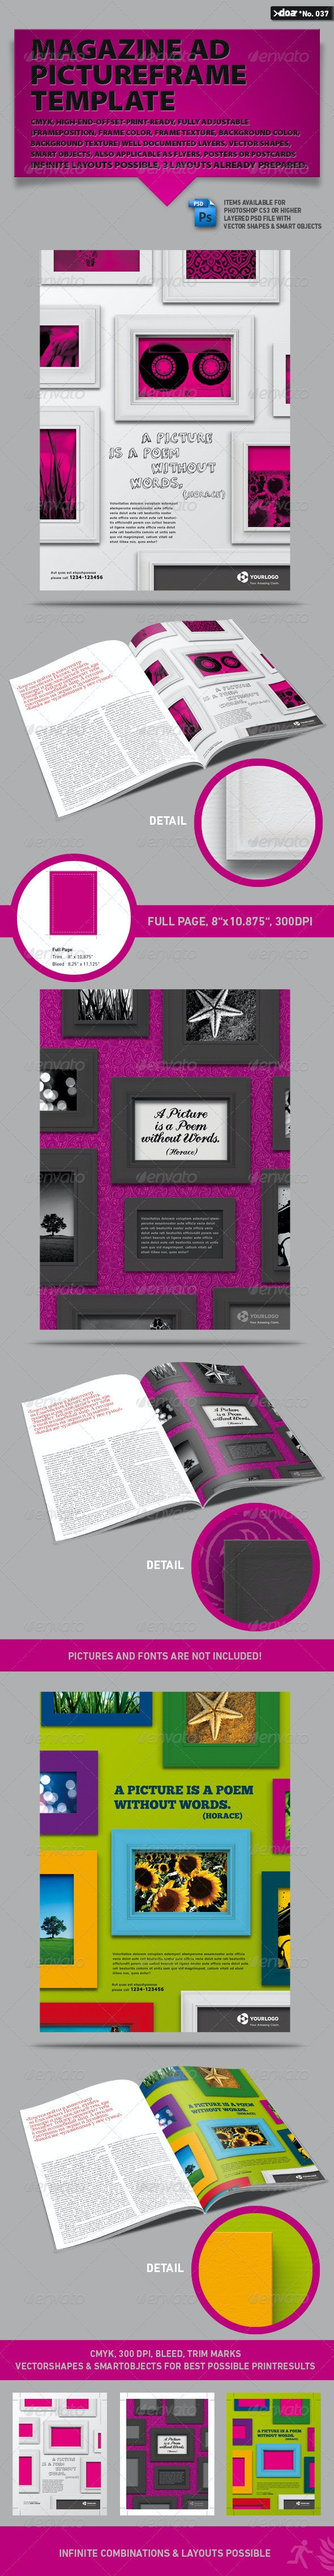 Magazine AD  Pictureframe Template - Corporate Flyers